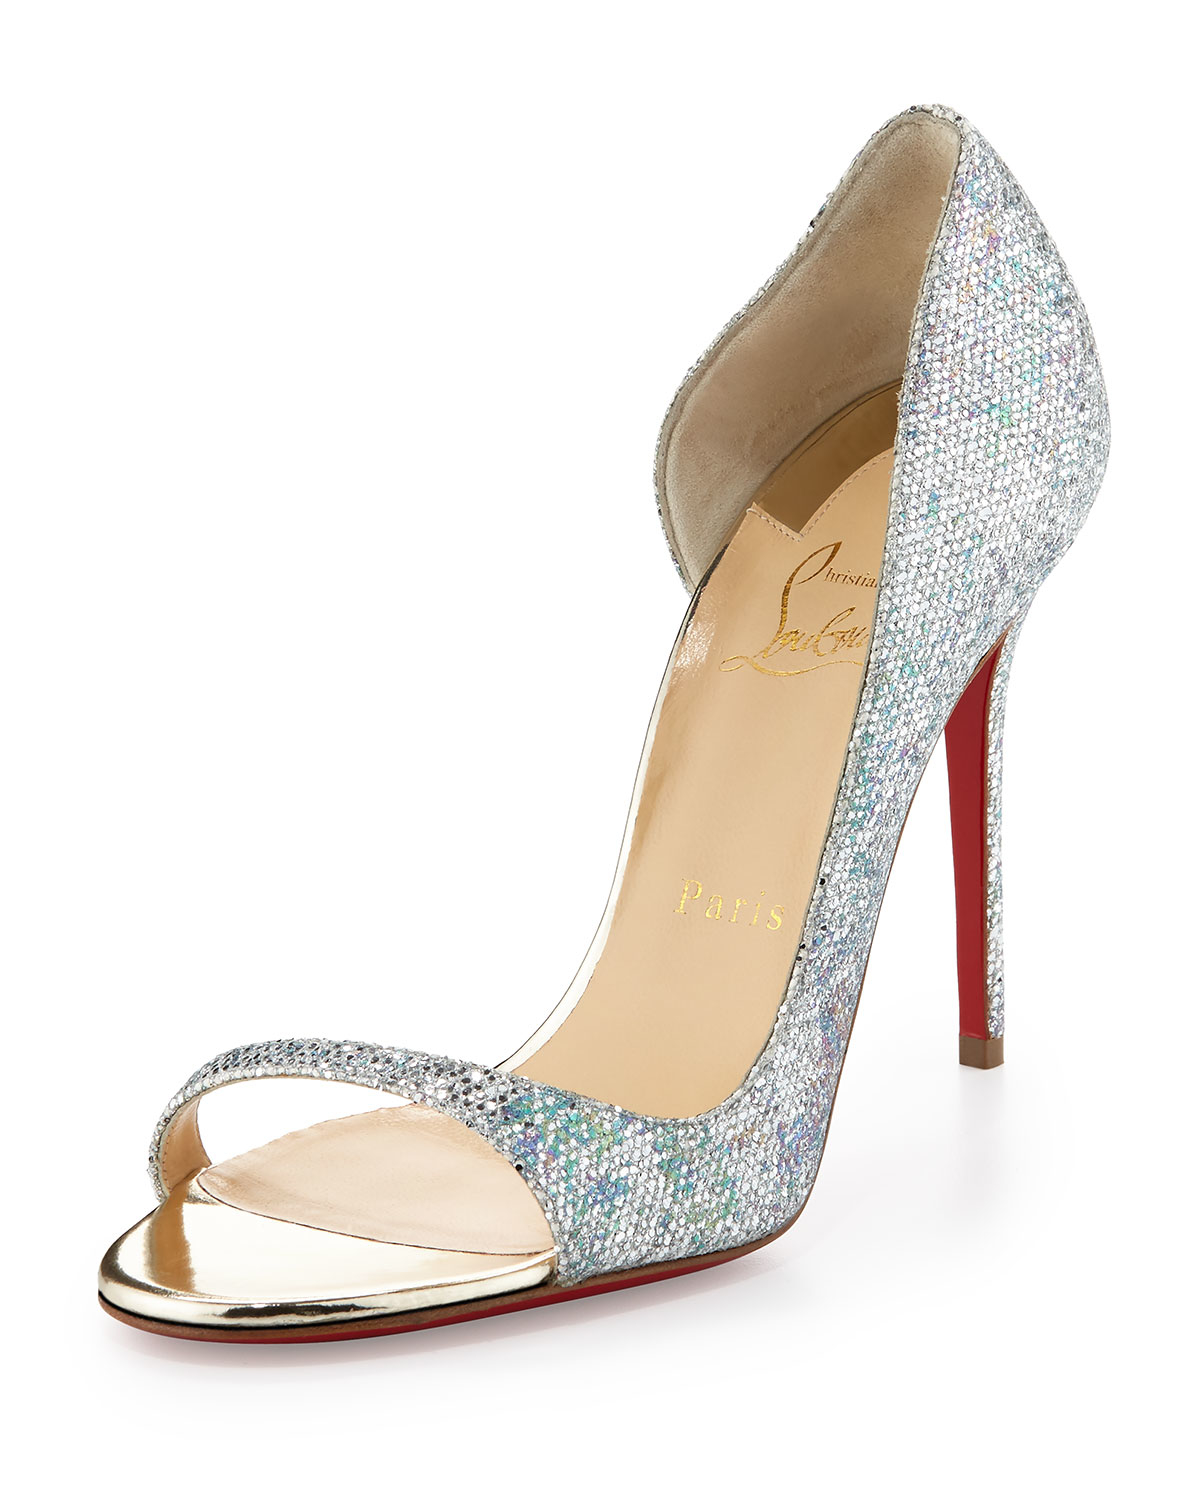 christian lubaton shoes - Christian louboutin Toboggan Glitter 100mm Red Sole Pump in ...